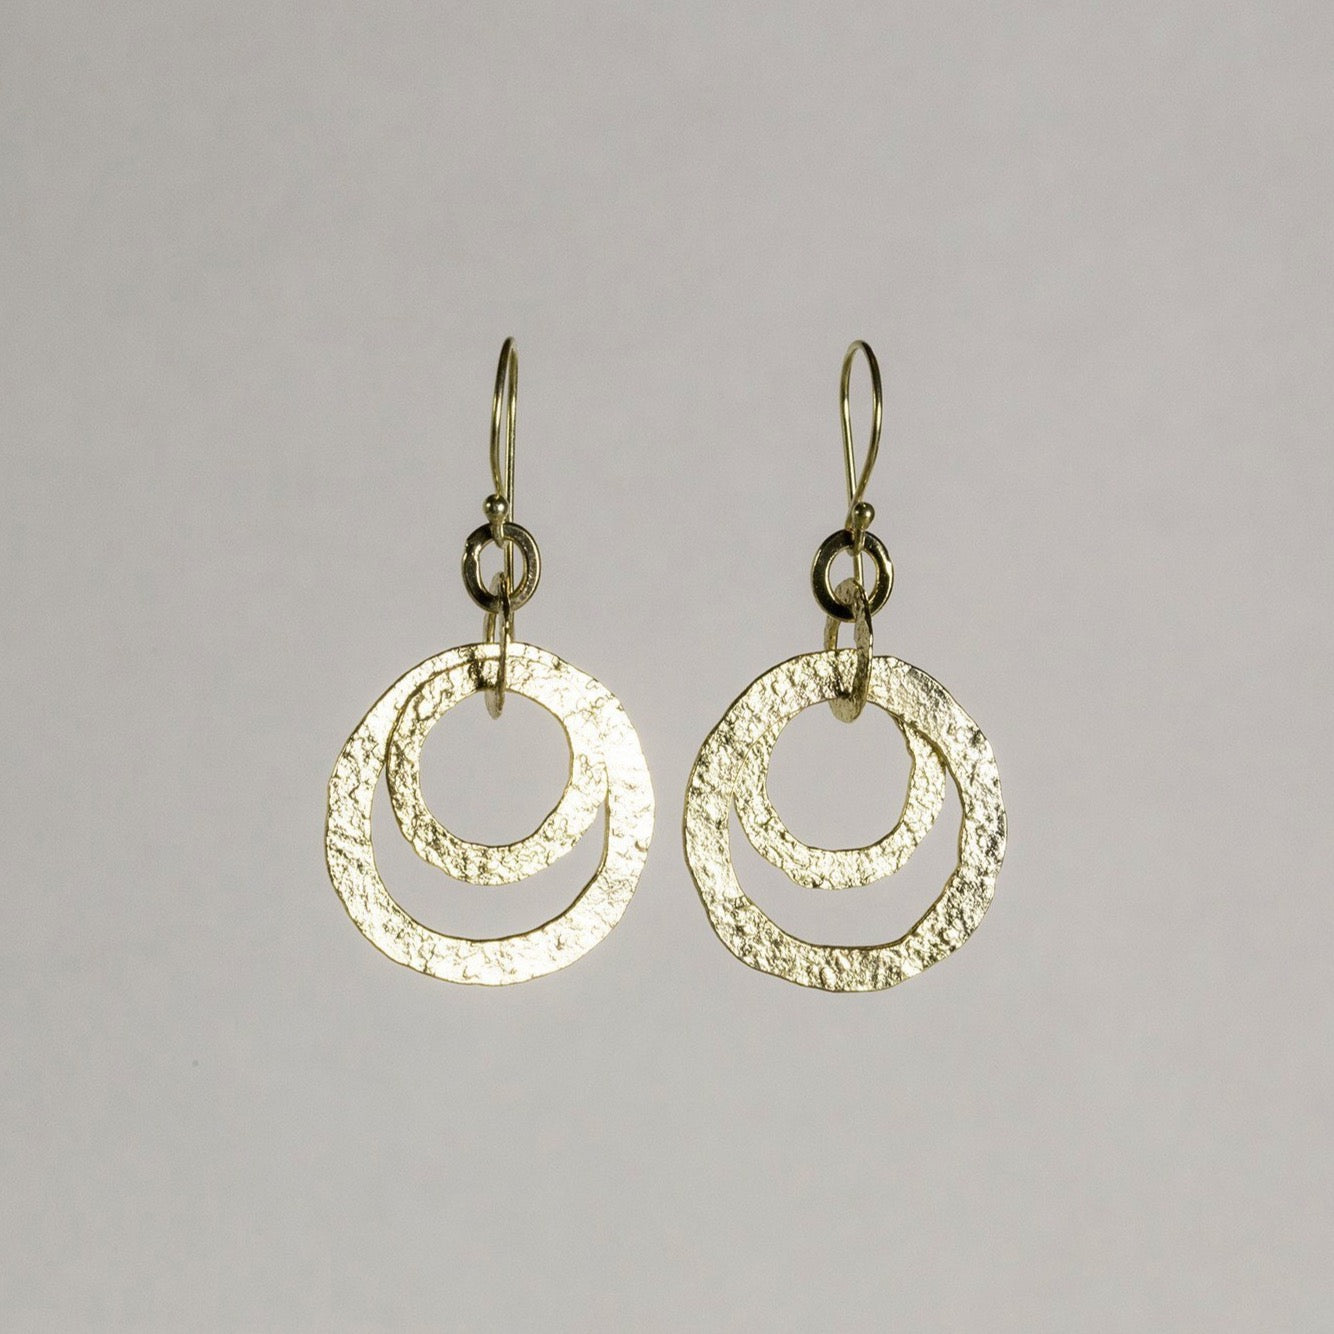 an entwined hoop earrings made of textured gold plated silver